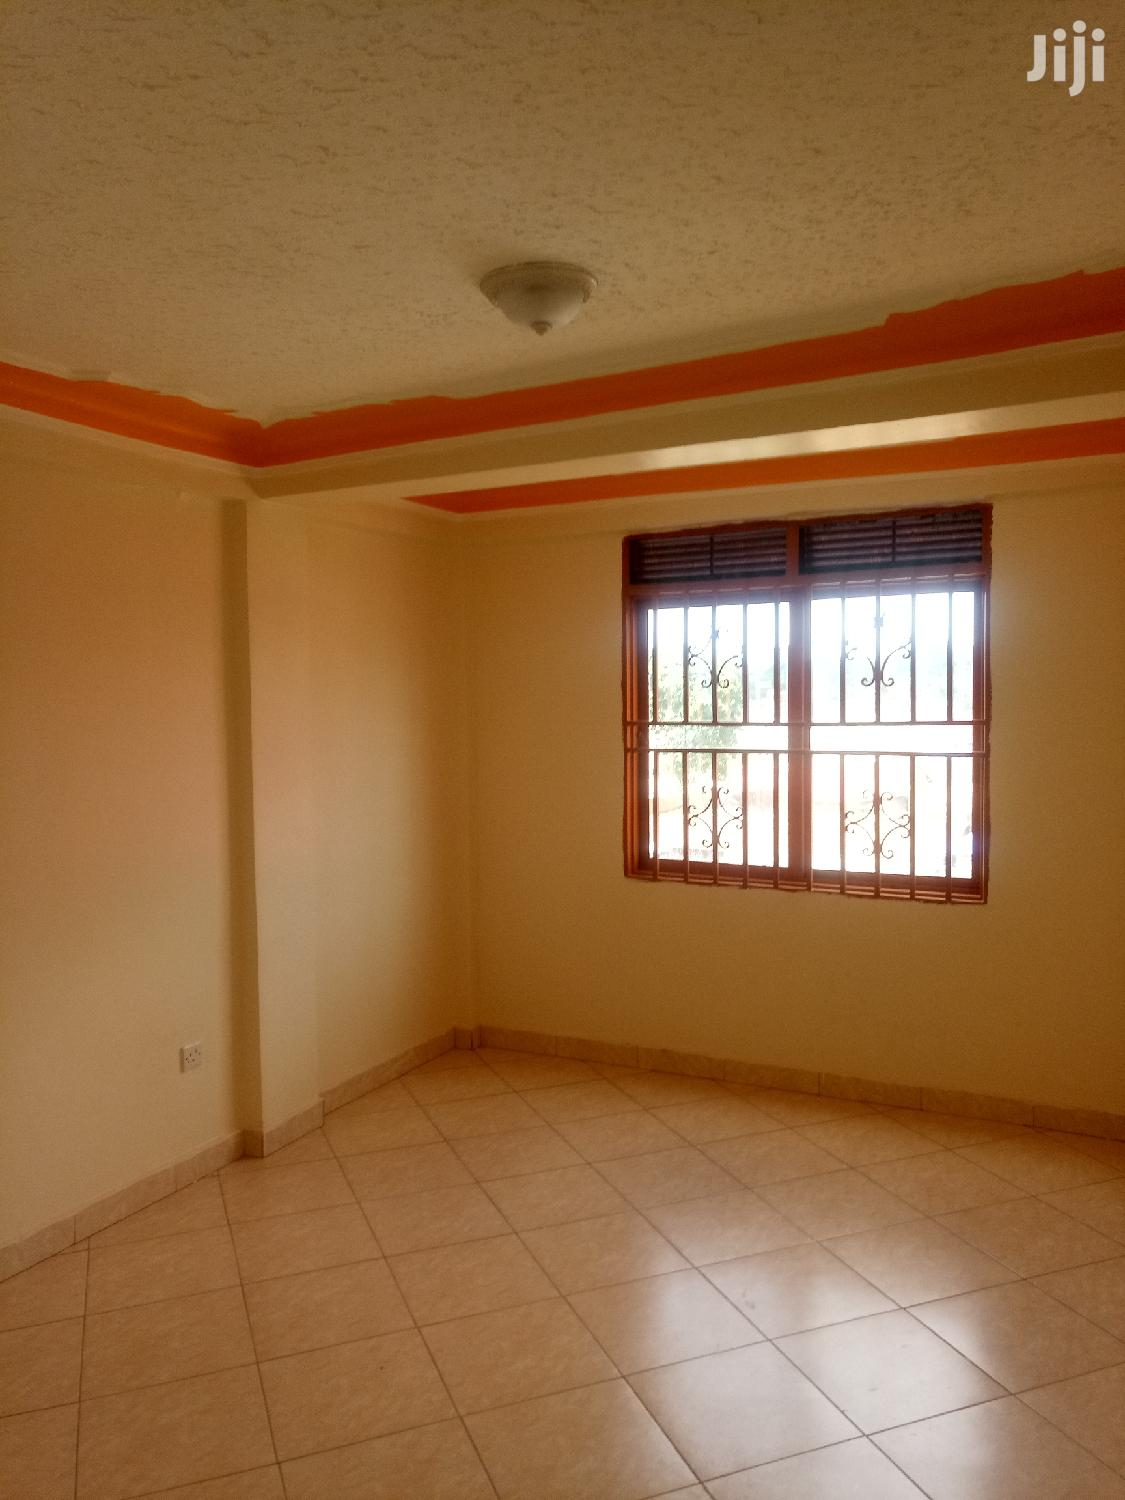 Brandnew Single Room for Rent in Kamwokya | Houses & Apartments For Rent for sale in Kampala, Central Region, Uganda